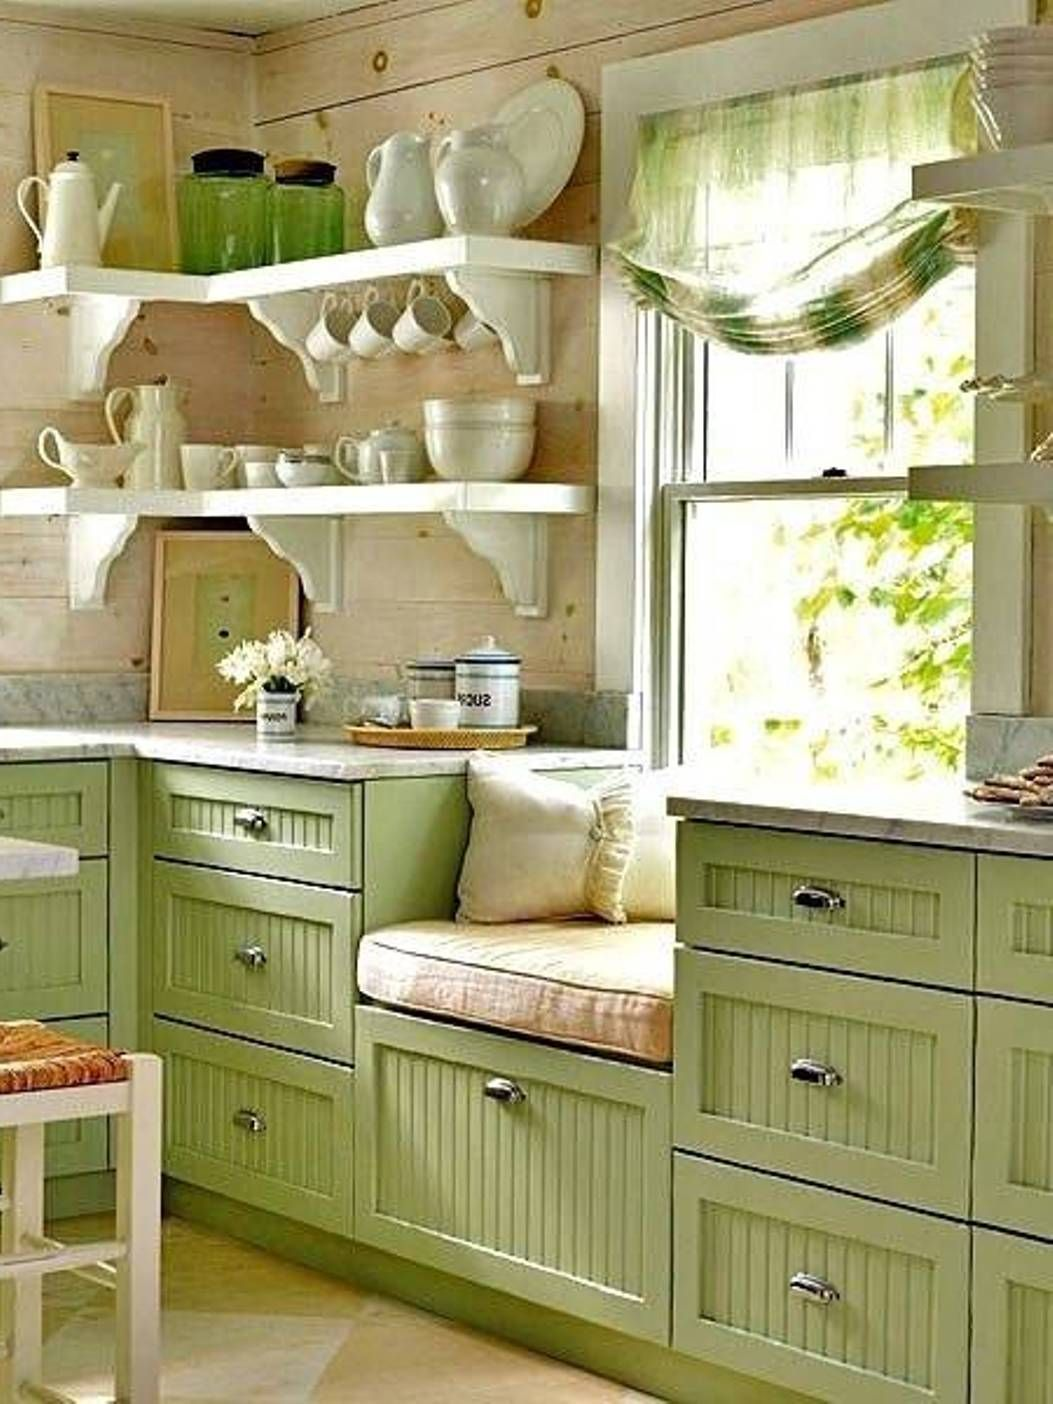 Beautiful Kitchens Designs 19 Amazing Kitchen Decorating Ideas Gardens Green Kitchen And